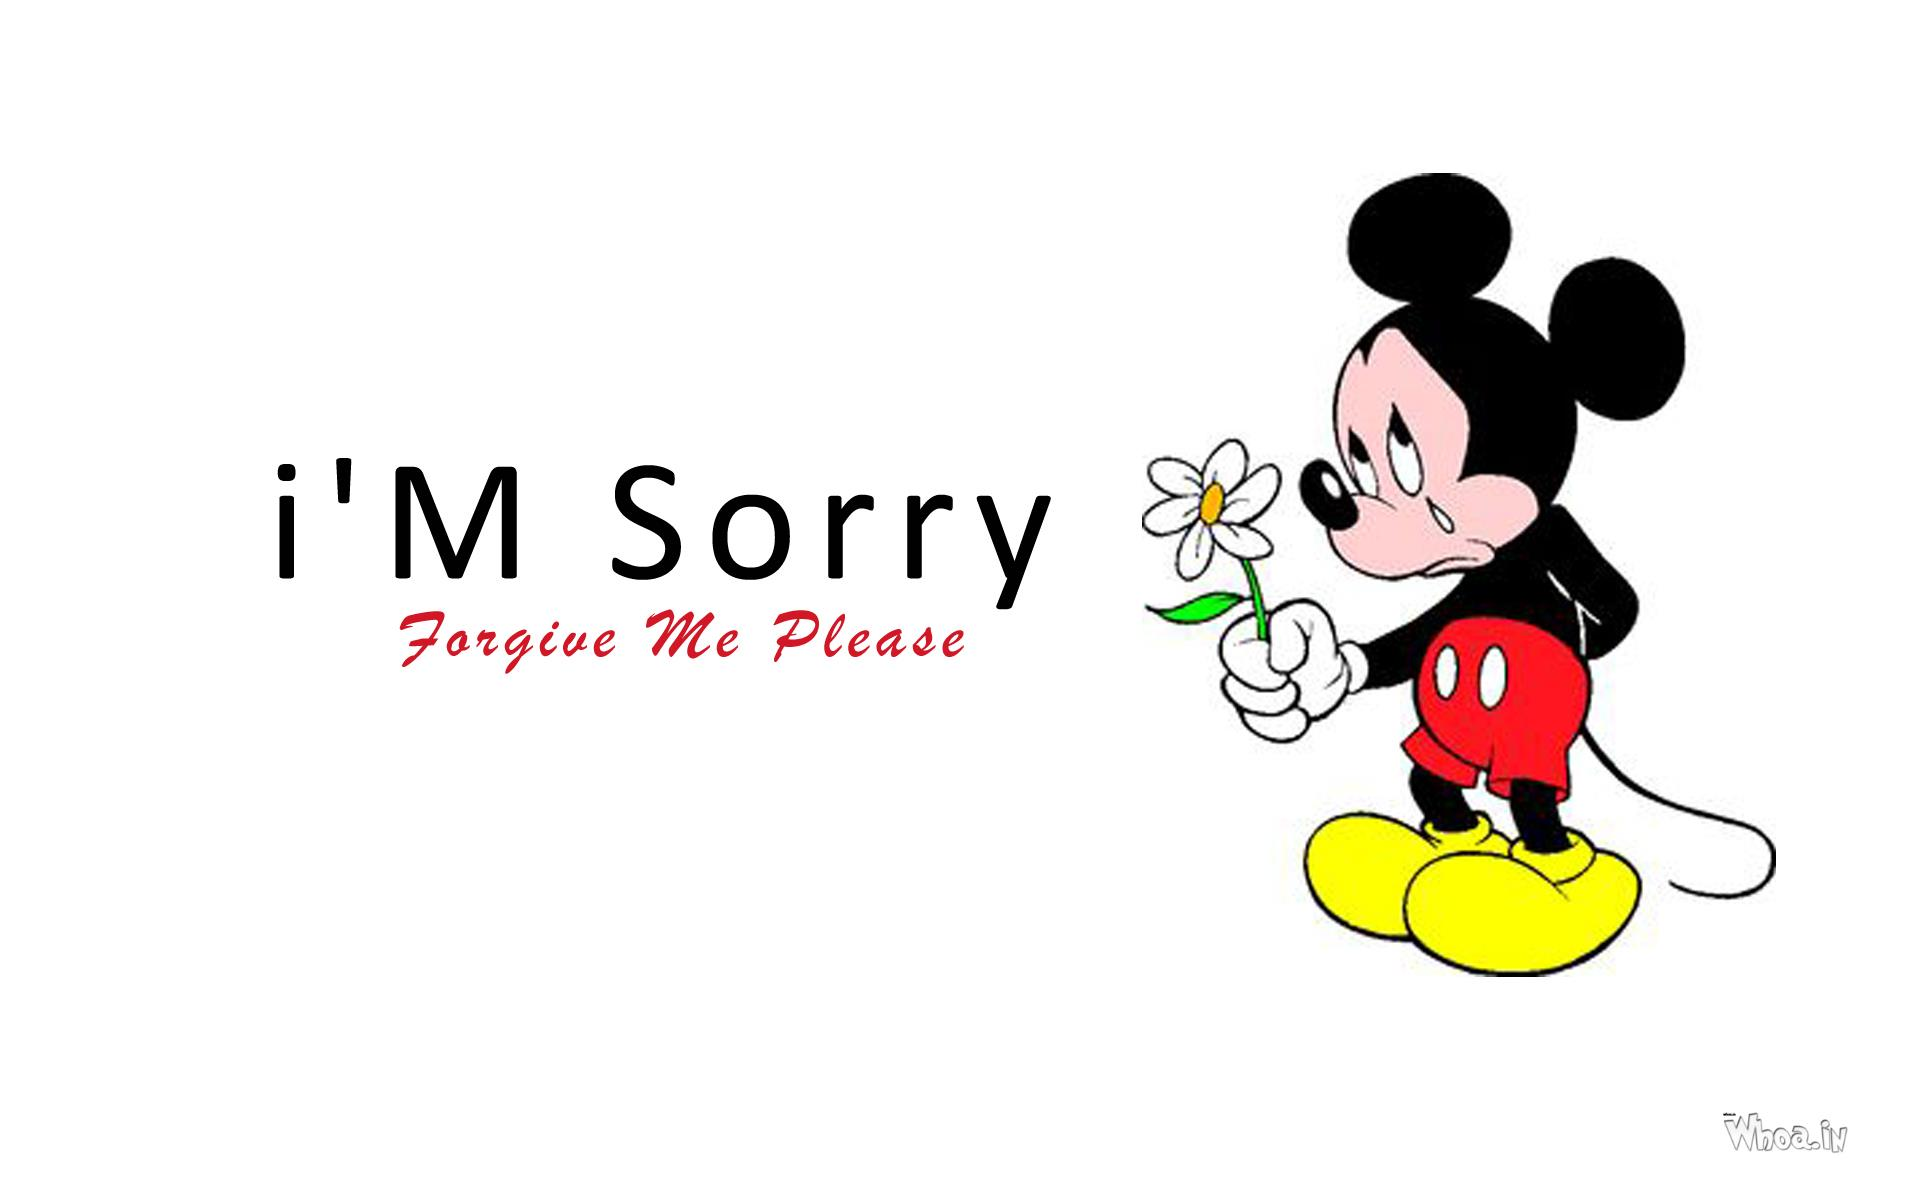 I M Sorry With Sad Mickey Mouse Hd Wallpaper